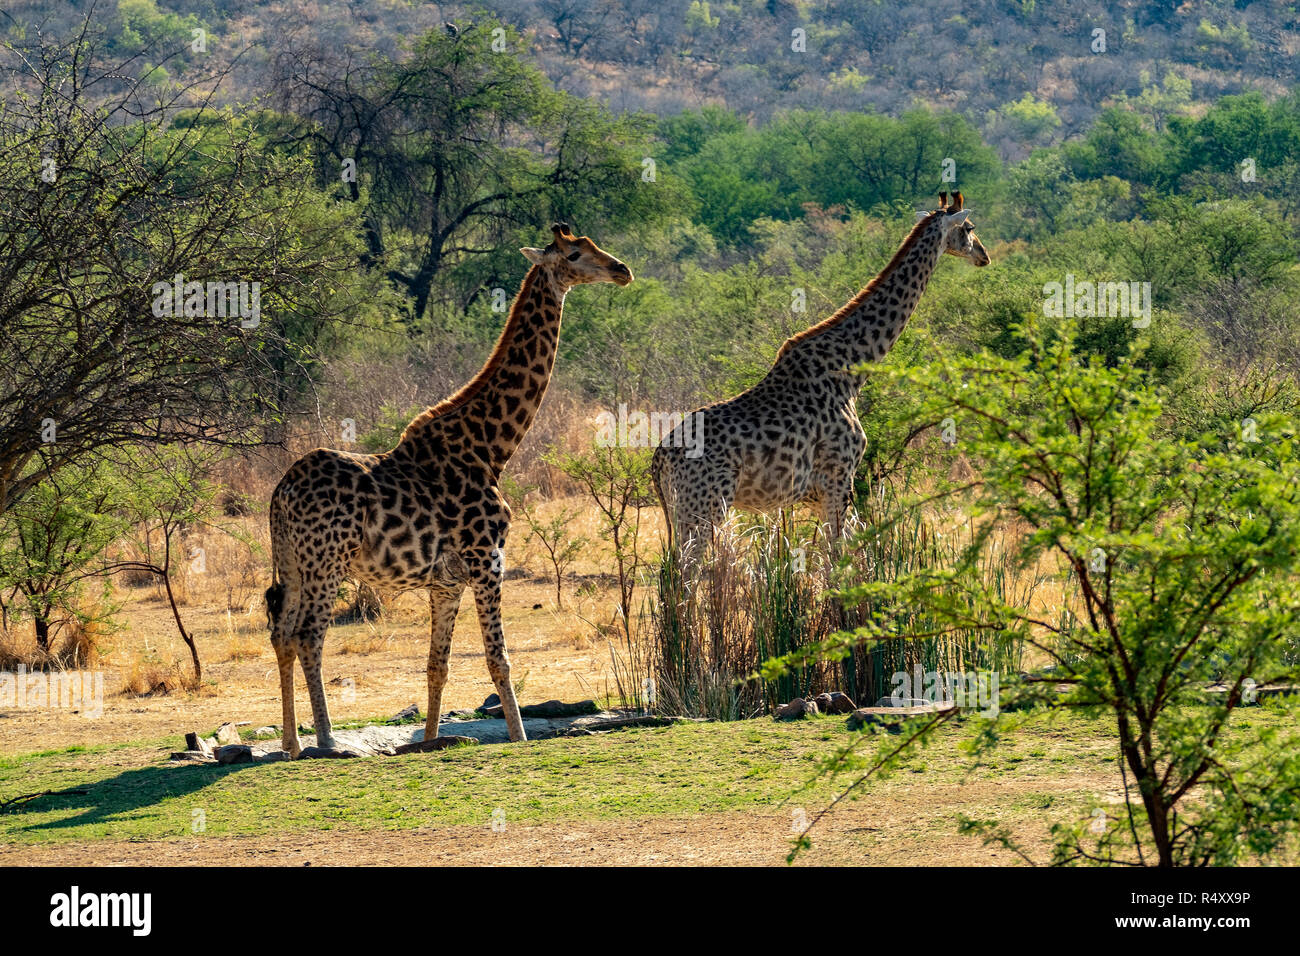 African animals - Stock Image